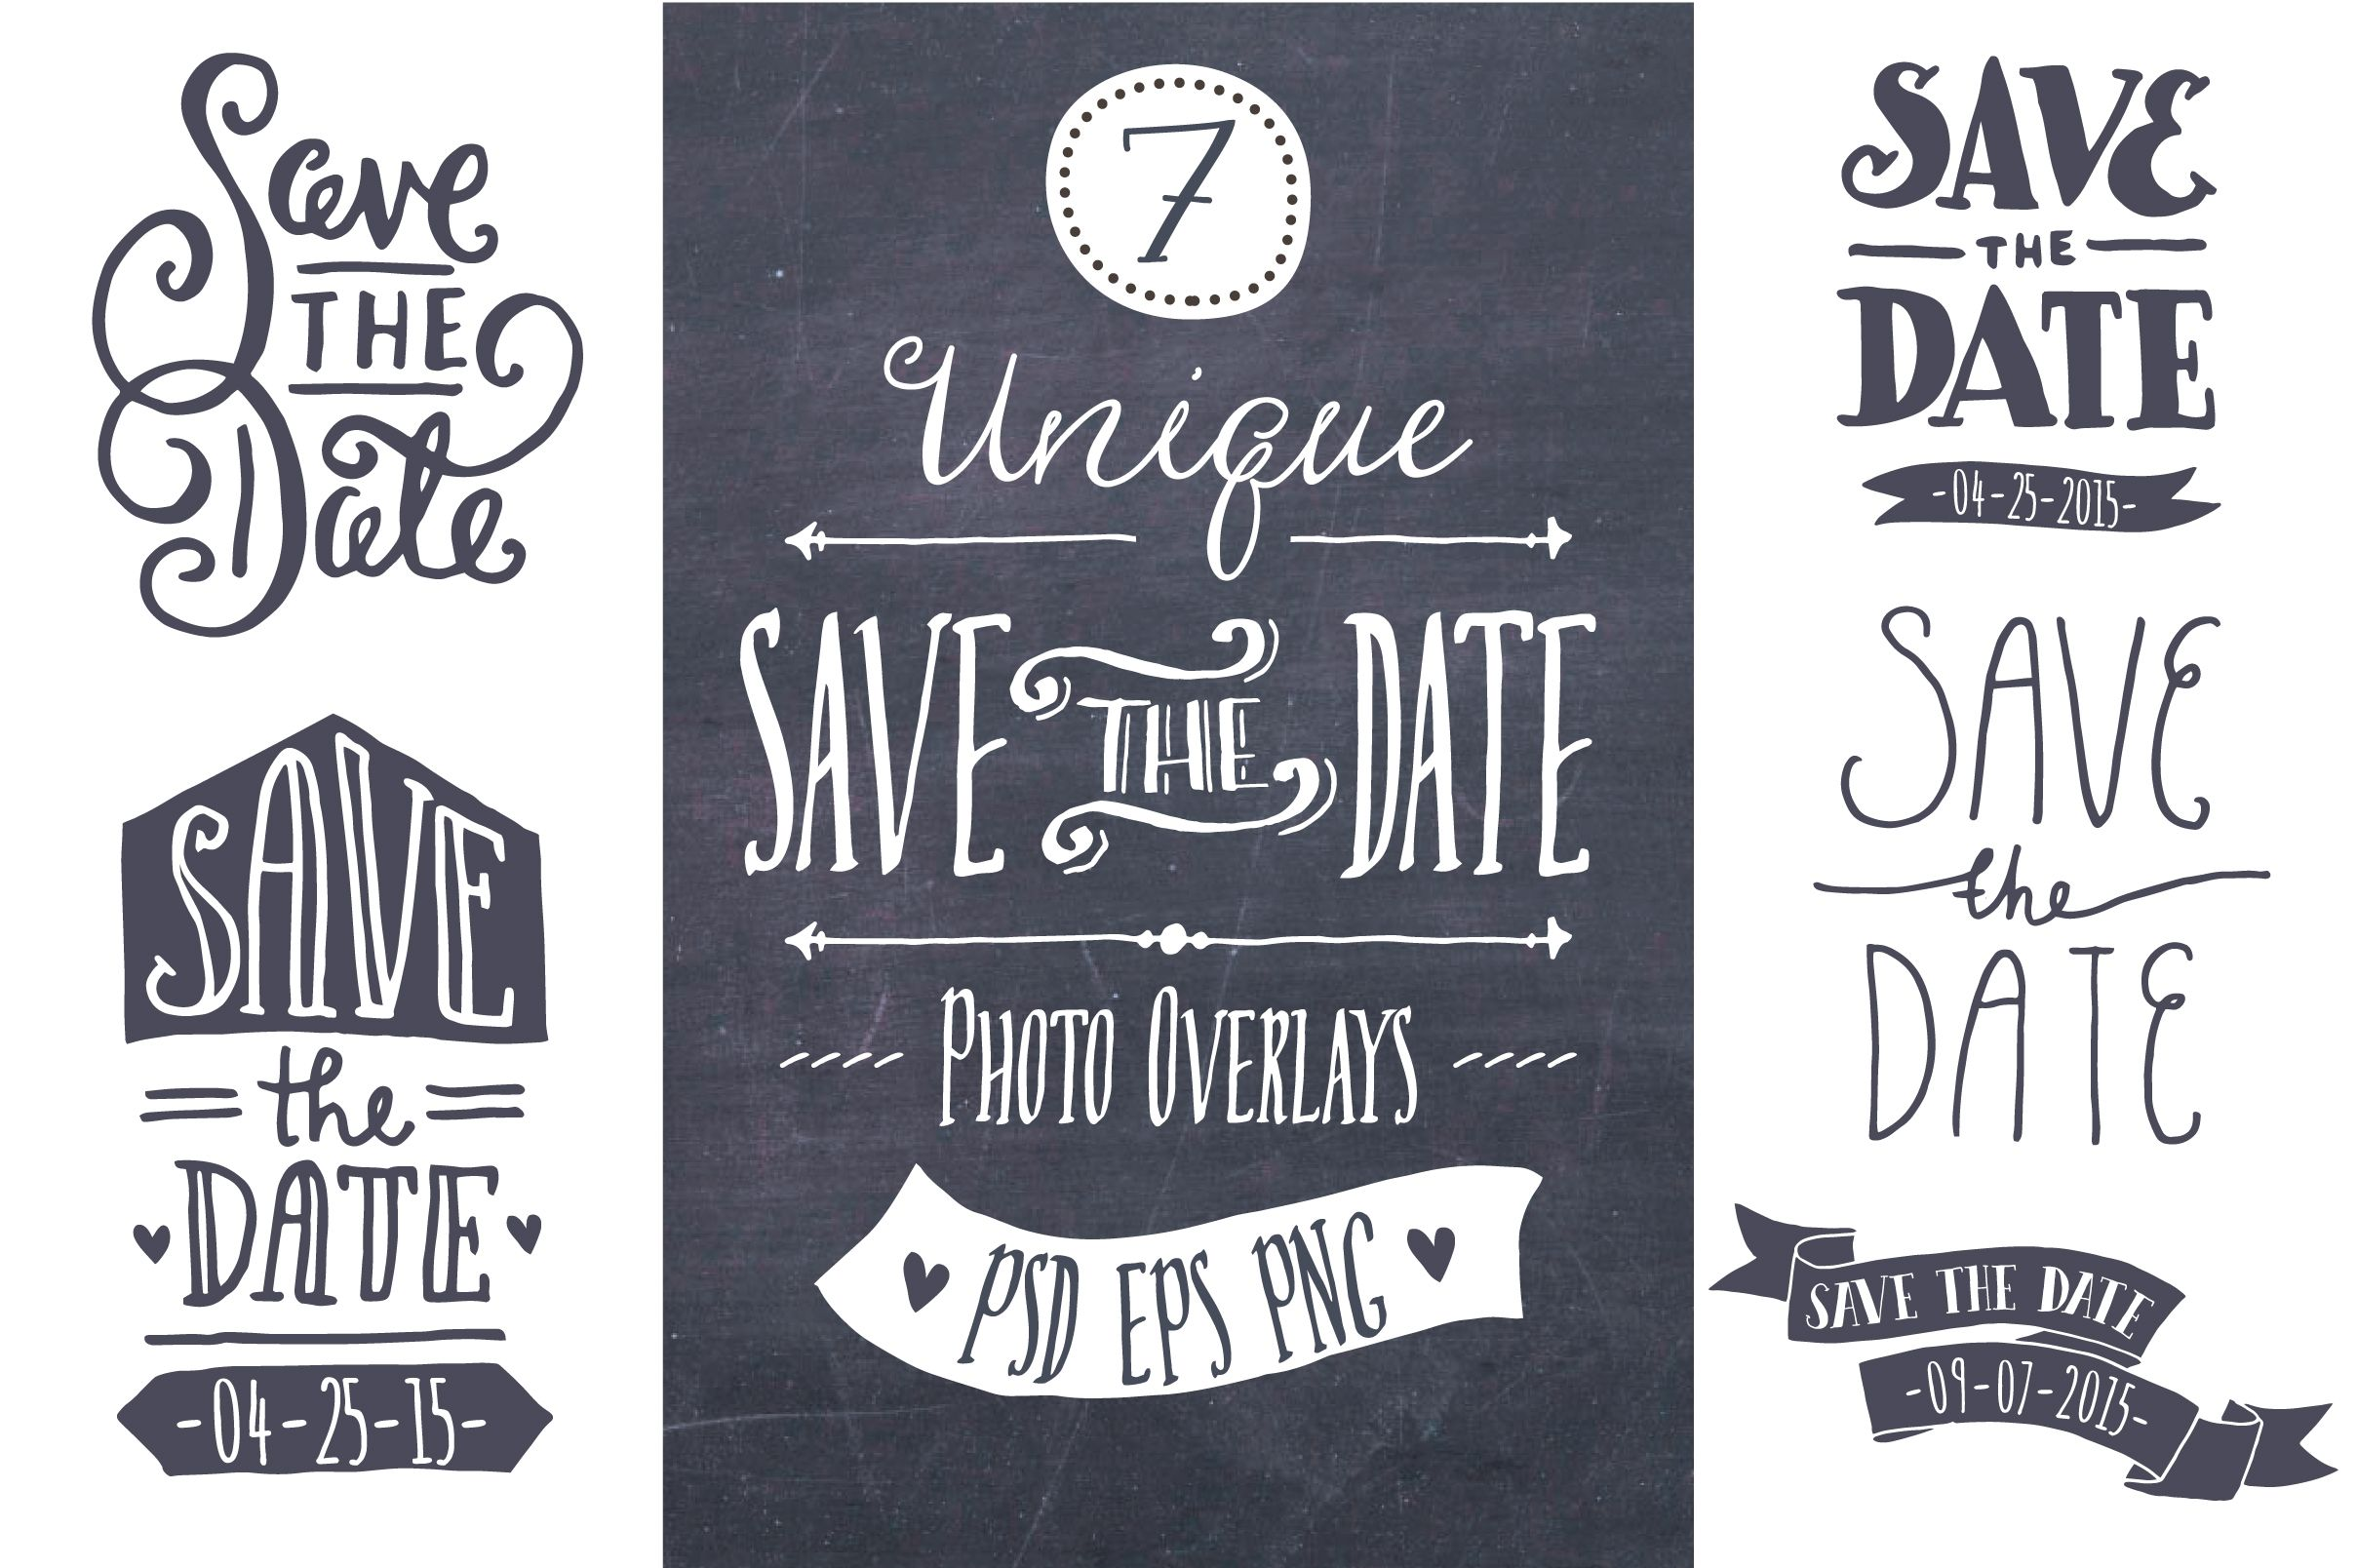 Save the Date Overlays   More Wedding ideas